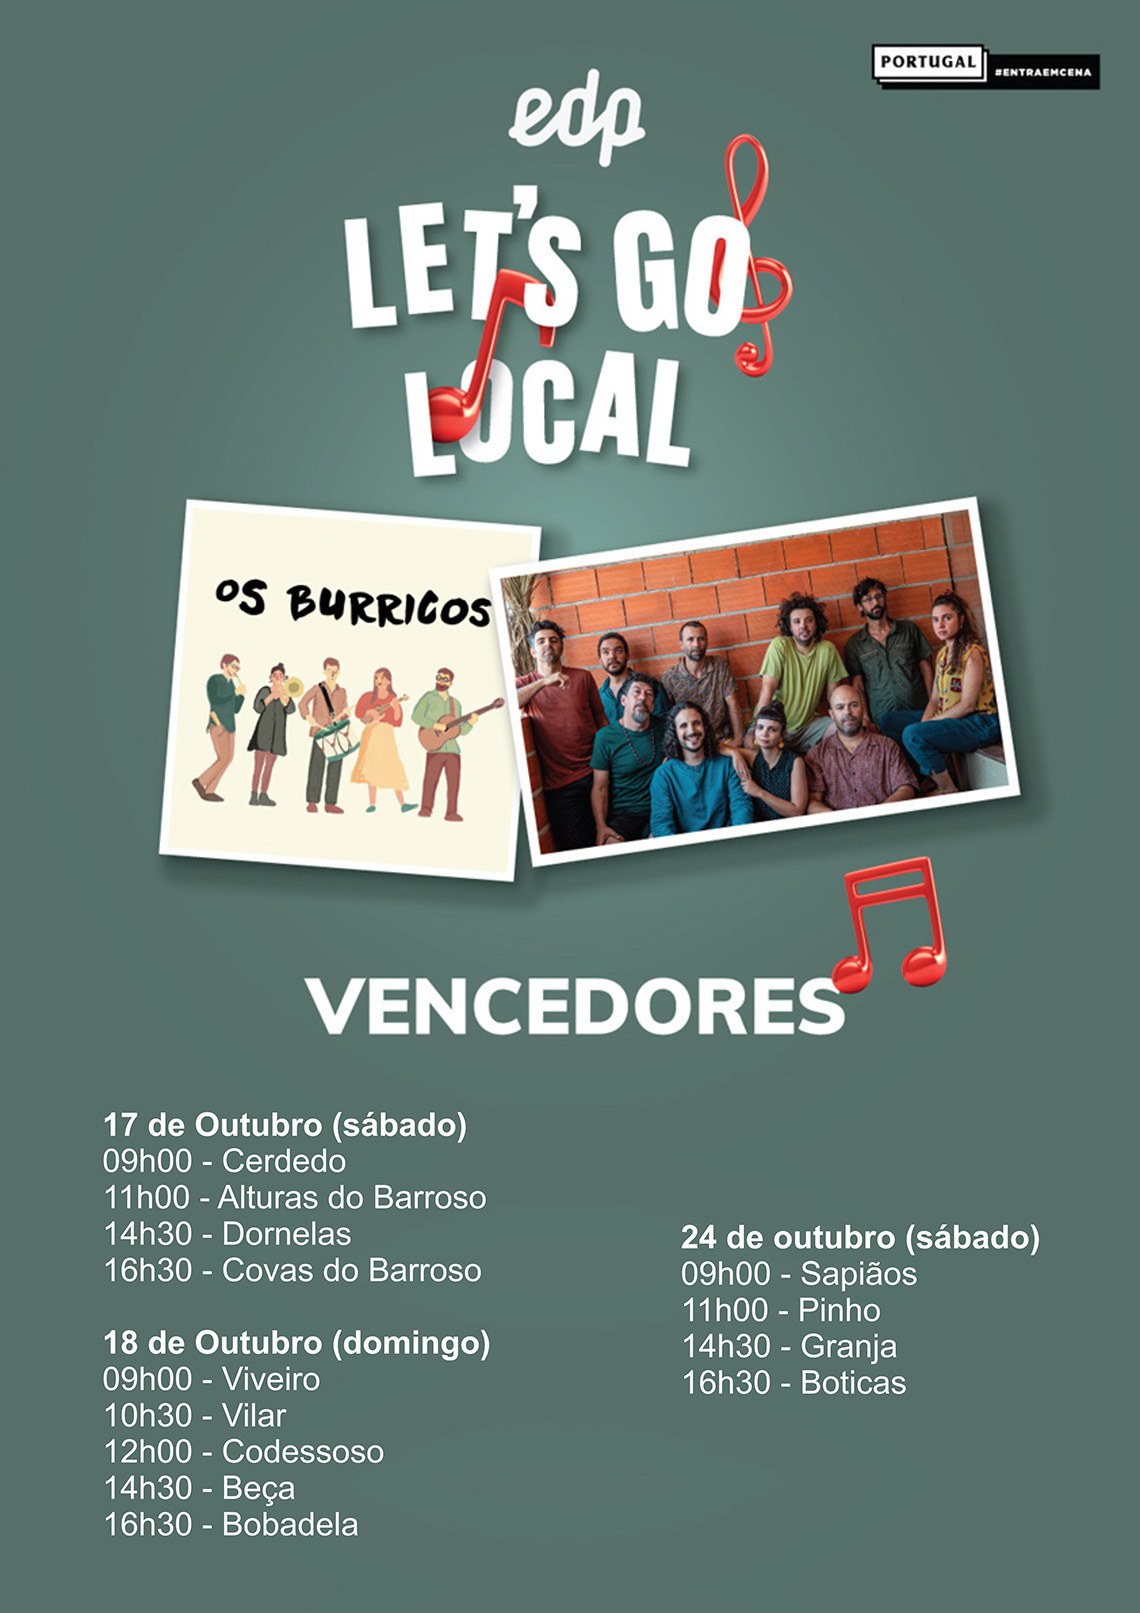 EDP LET´S GO LOCAL - Os Burricos